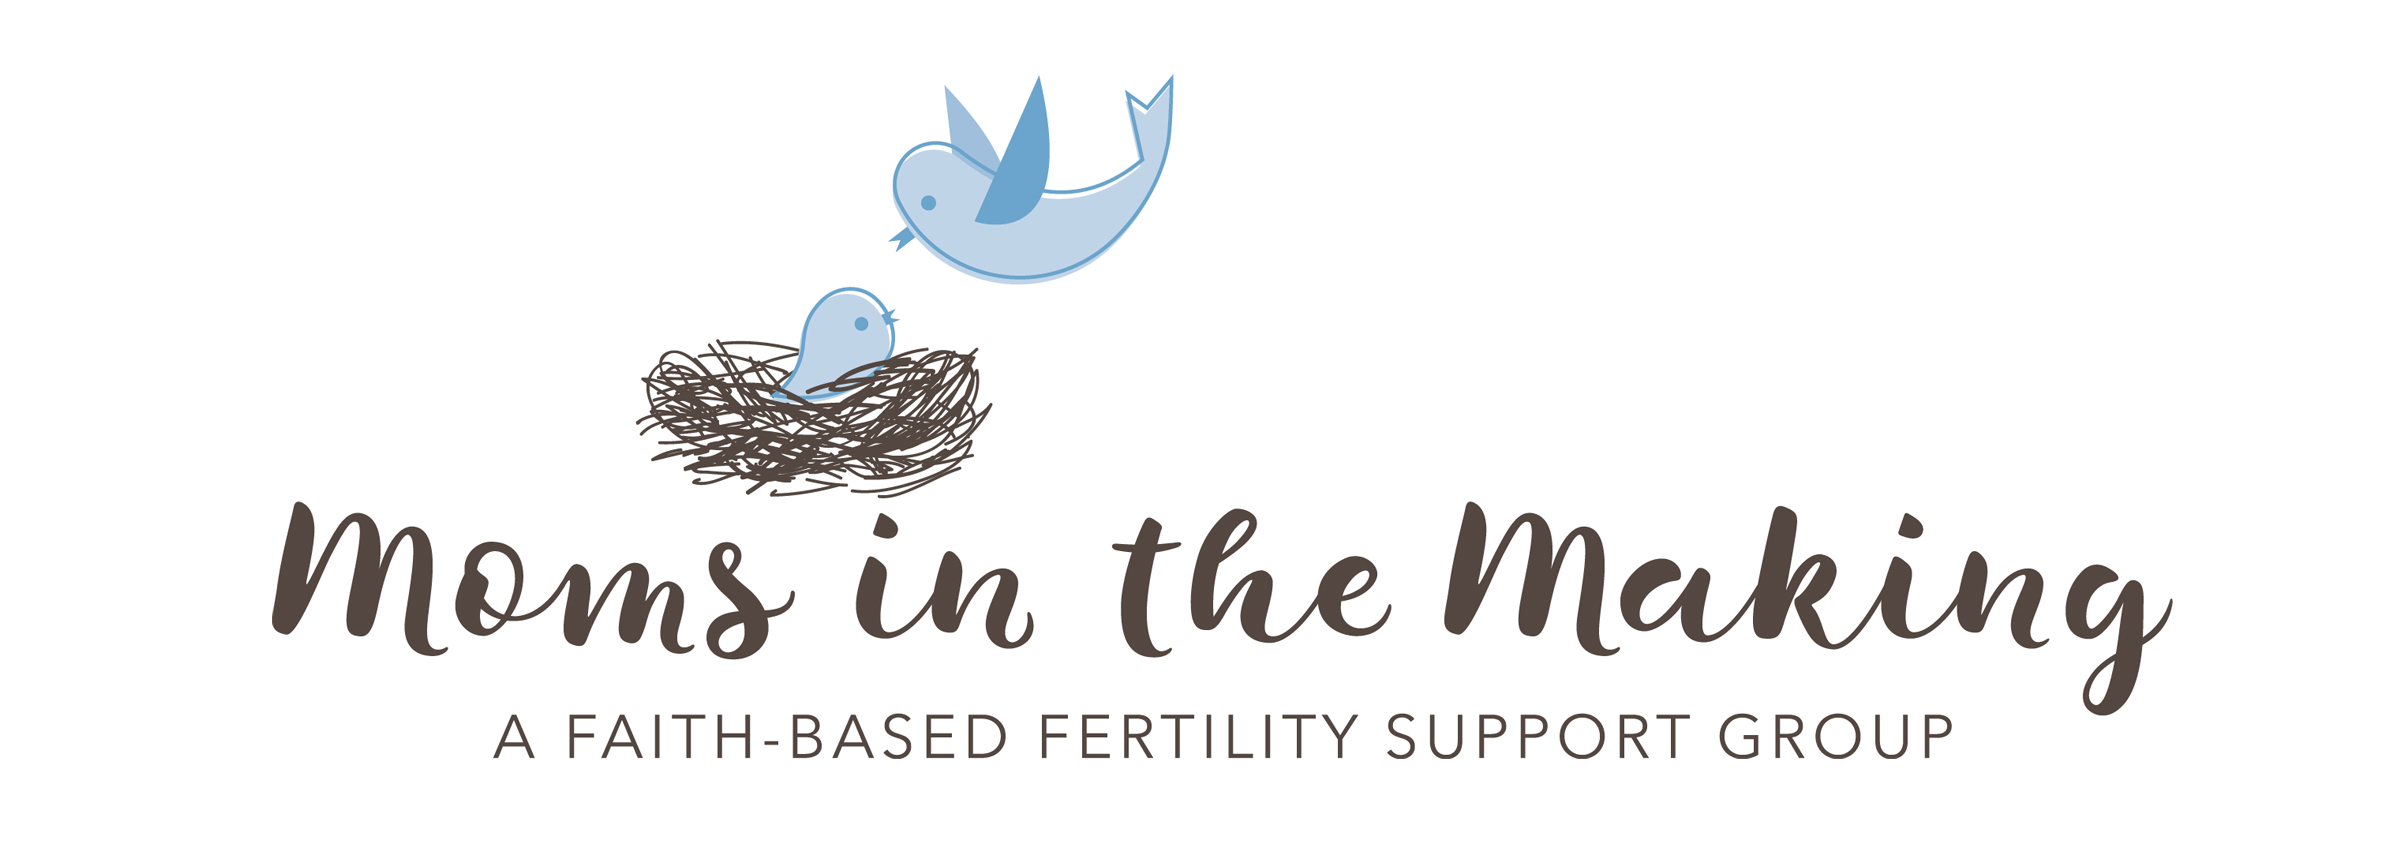 Moms in the Making - Faith Based Fertility Group